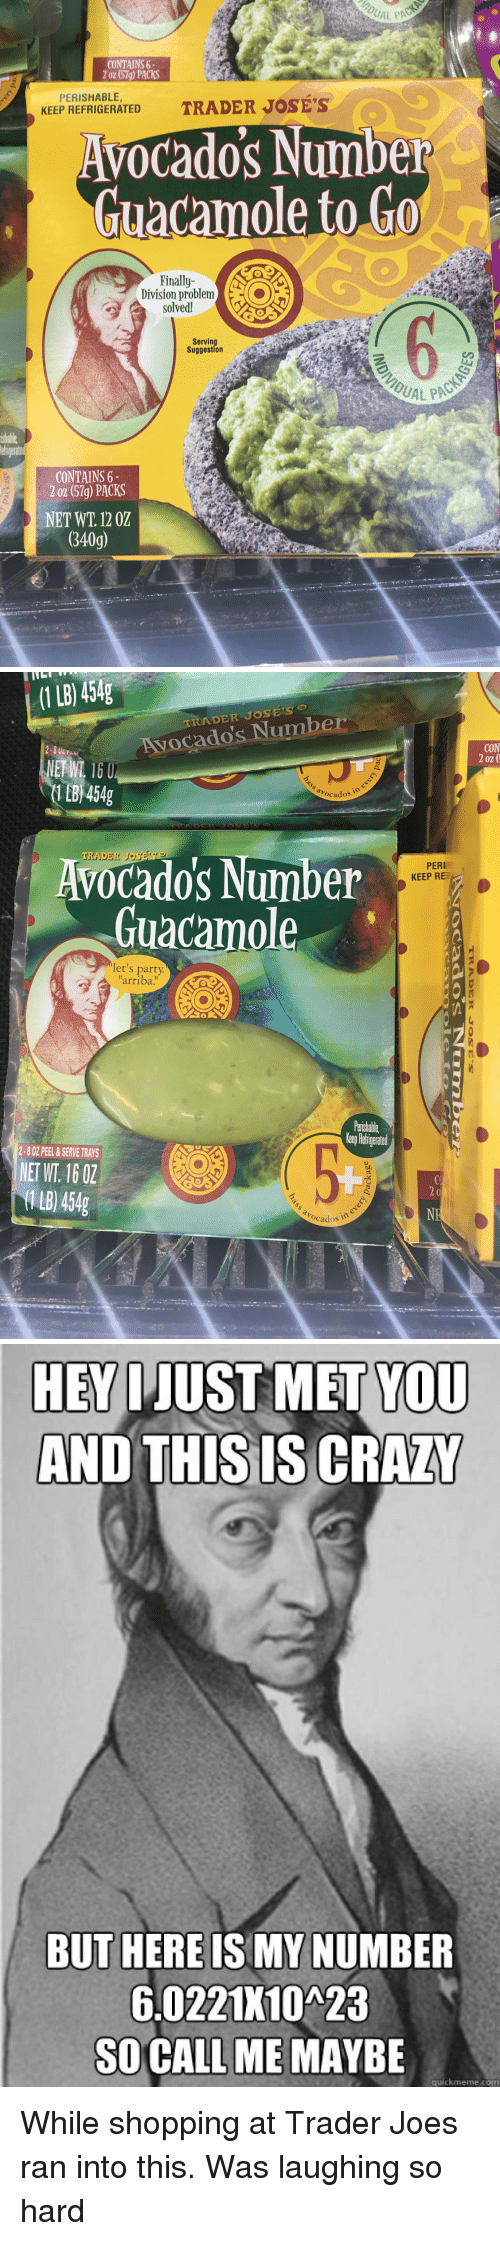 "Quickmeme Com: CONTAINS 6  2 oz (57g) PACKS  PERISHABLE,  KEEP REFRIGERATED  Avocado's Number  Guacamole to Go  Finally  solved!  Serving  Suggestion  UAL PAC  ishable  CONTAINS 6  2 oz (57g) PACKS  NET WT. 12 02  340g)   (1 LB) 454g  To  RADER JOSES  Avocado's Number  CON  0Z  1LB 454g  avocados  Avocado's Number  Guacamole  TRADER JOSE'S  PERI  KEEP RE  let's party  arriba!""  Paishable  erp Retigeated  2-8 OZ PEEL &SERVE TRAYS  NET WT. 16 0Z  1 B) 454g  b0  Ocados   HEV IJUST MET YOU  AND THIS IS CRAZ  BUT HERE IS MY NUMBER  6.0221K10A23  SO CALL ME MAYBE  quickmeme.com While shopping at Trader Joes ran into this. Was laughing so hard"